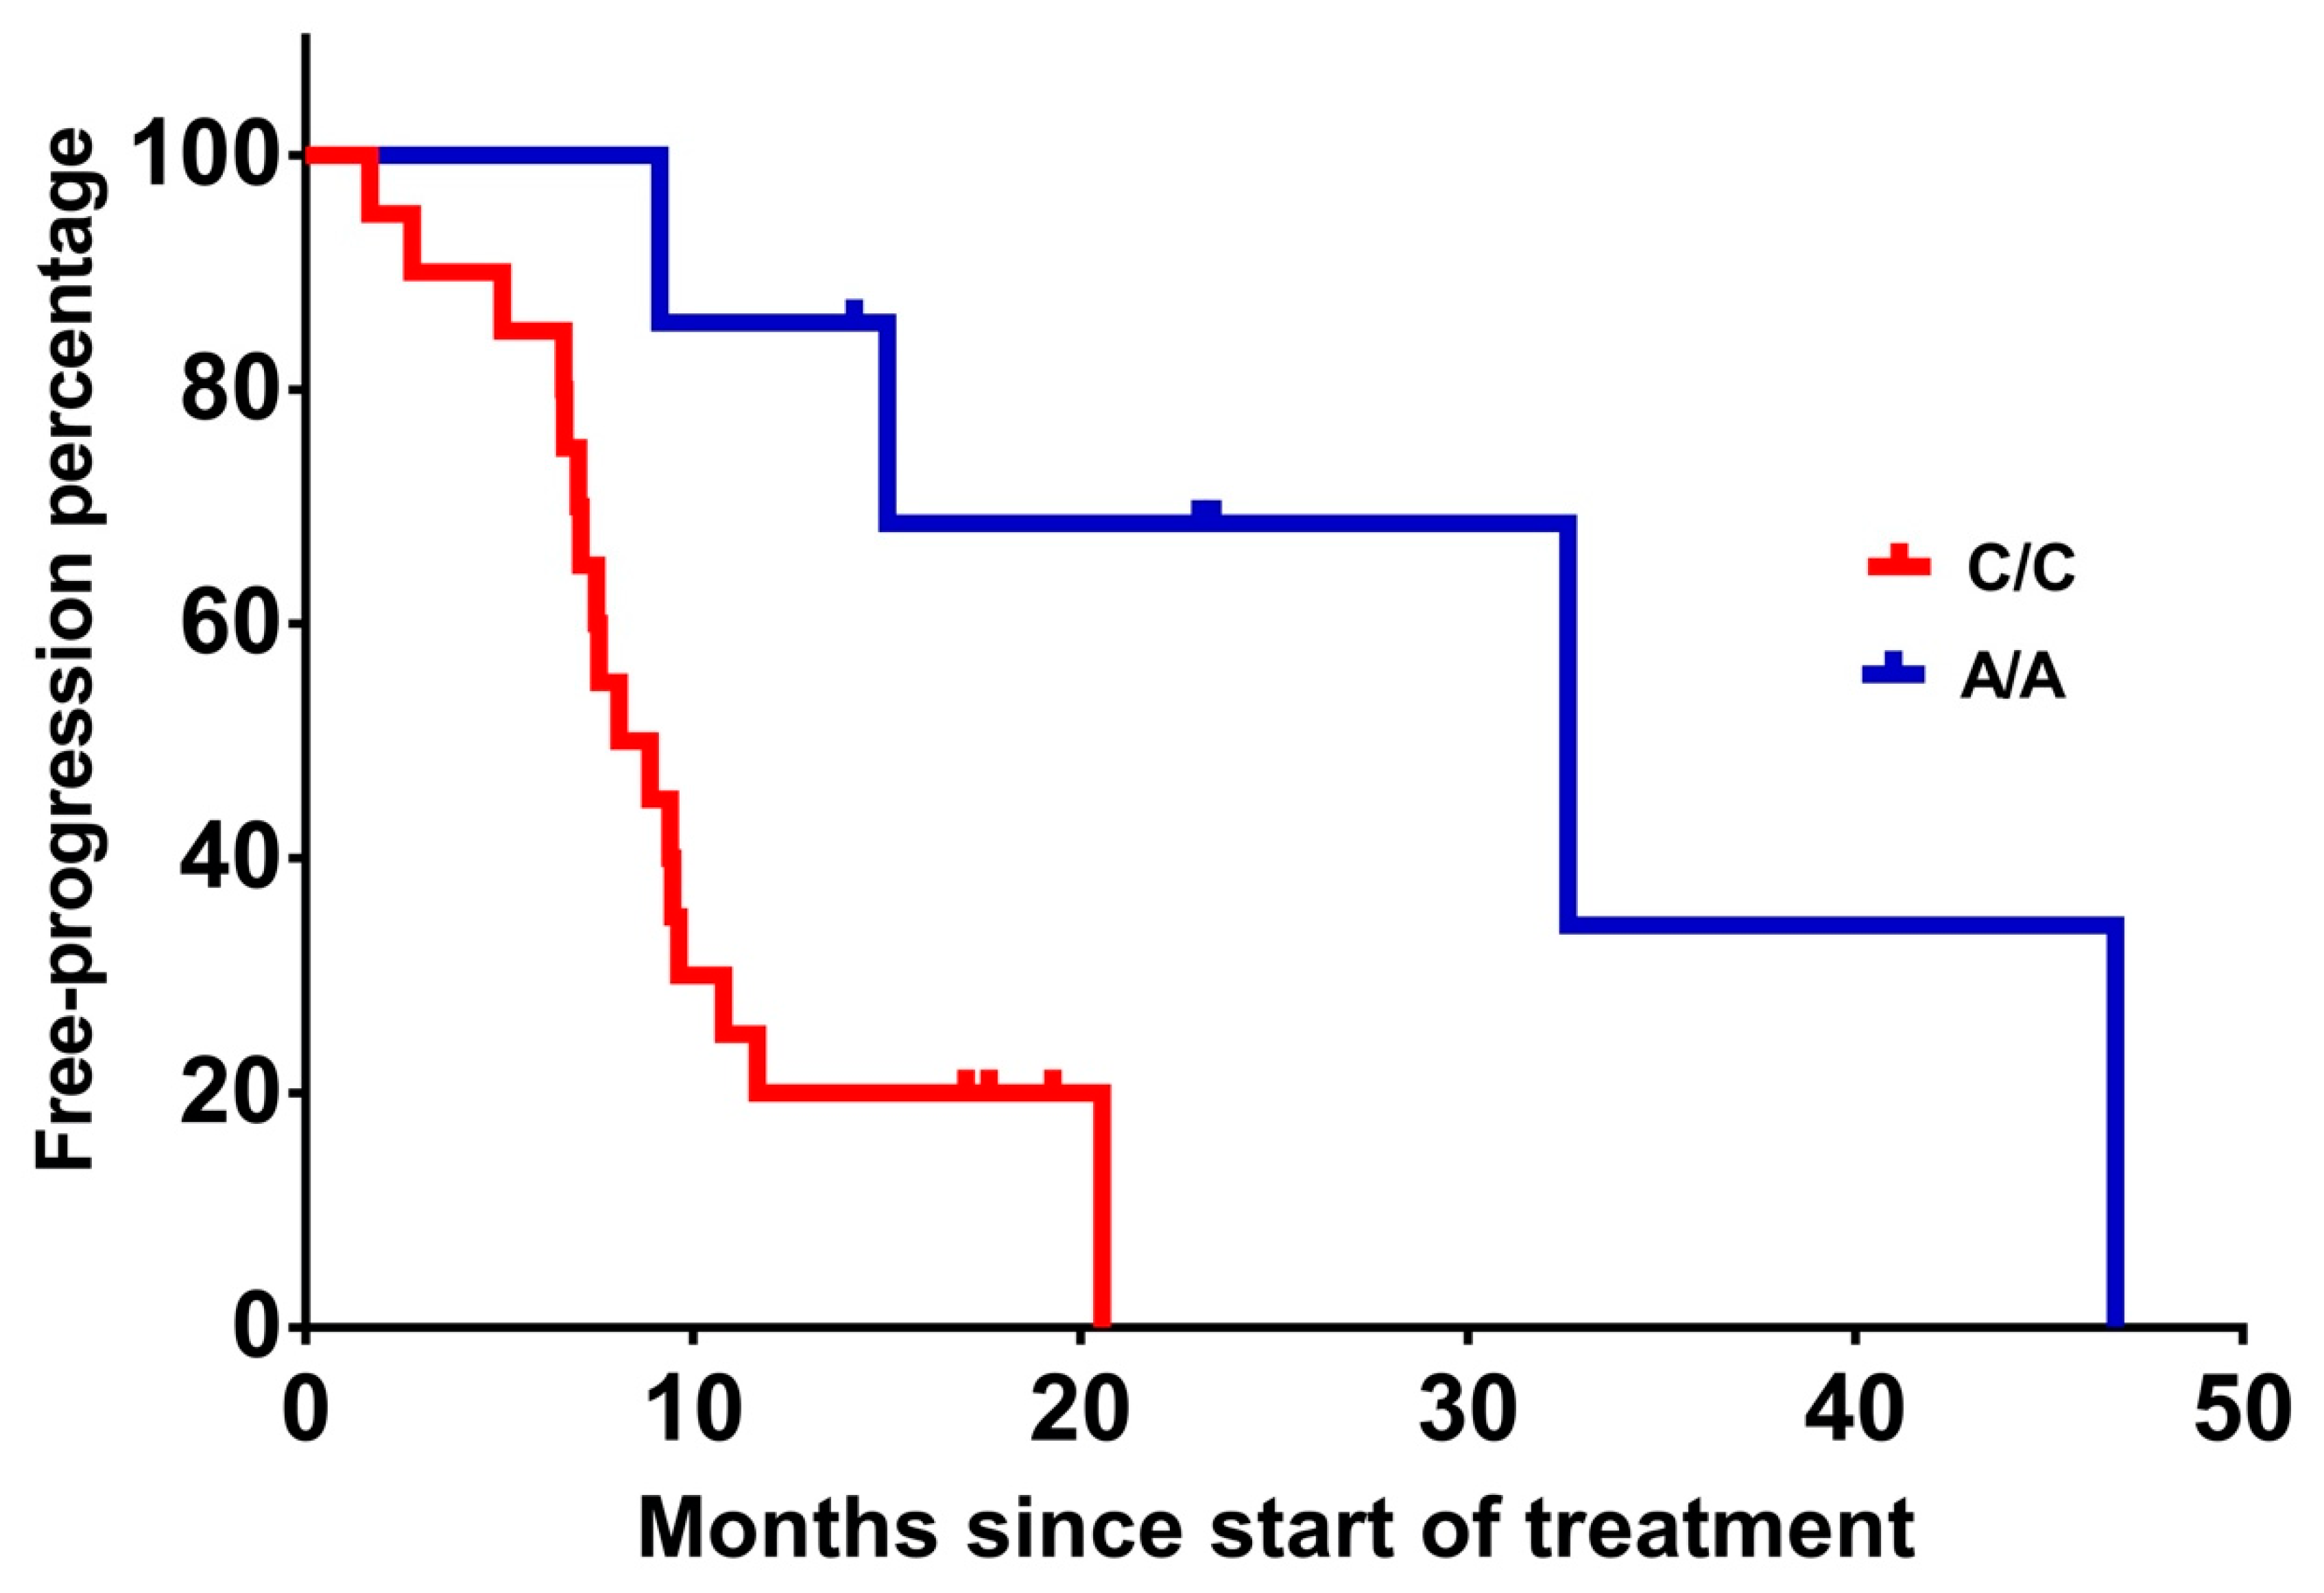 Ijms Free Full Text Vegf A And Icam 1 Gene Polymorphisms As Predictors Of Clinical Outcome To First Line Bevacizumab Based Treatment In Metastatic Colorectal Cancer Html